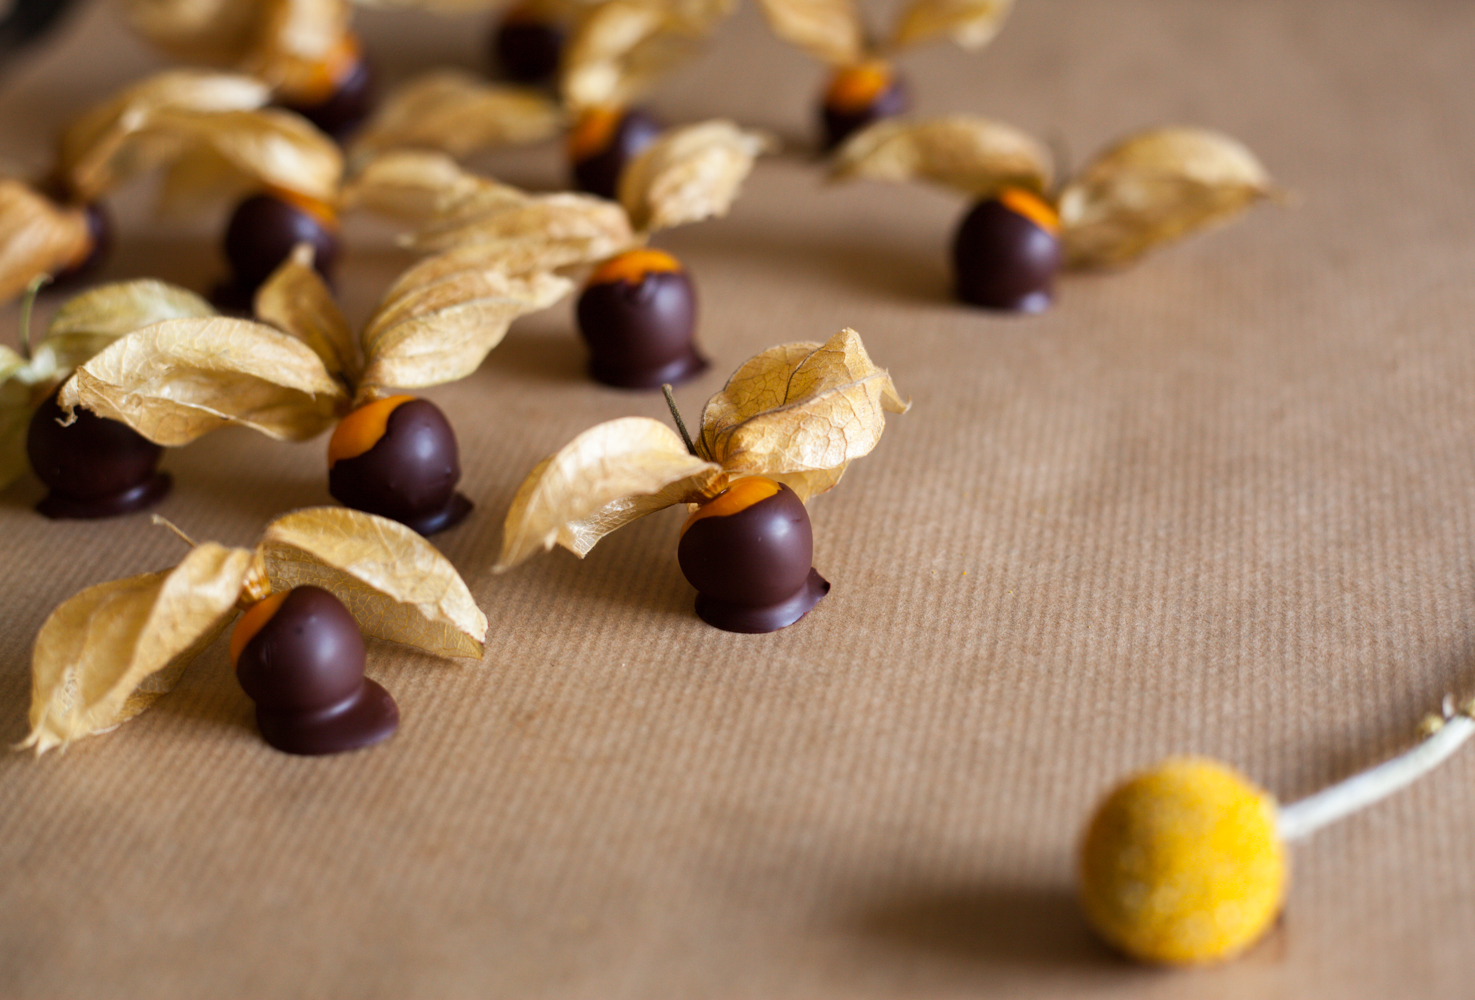 Chocolate Dipped Physalis Berries